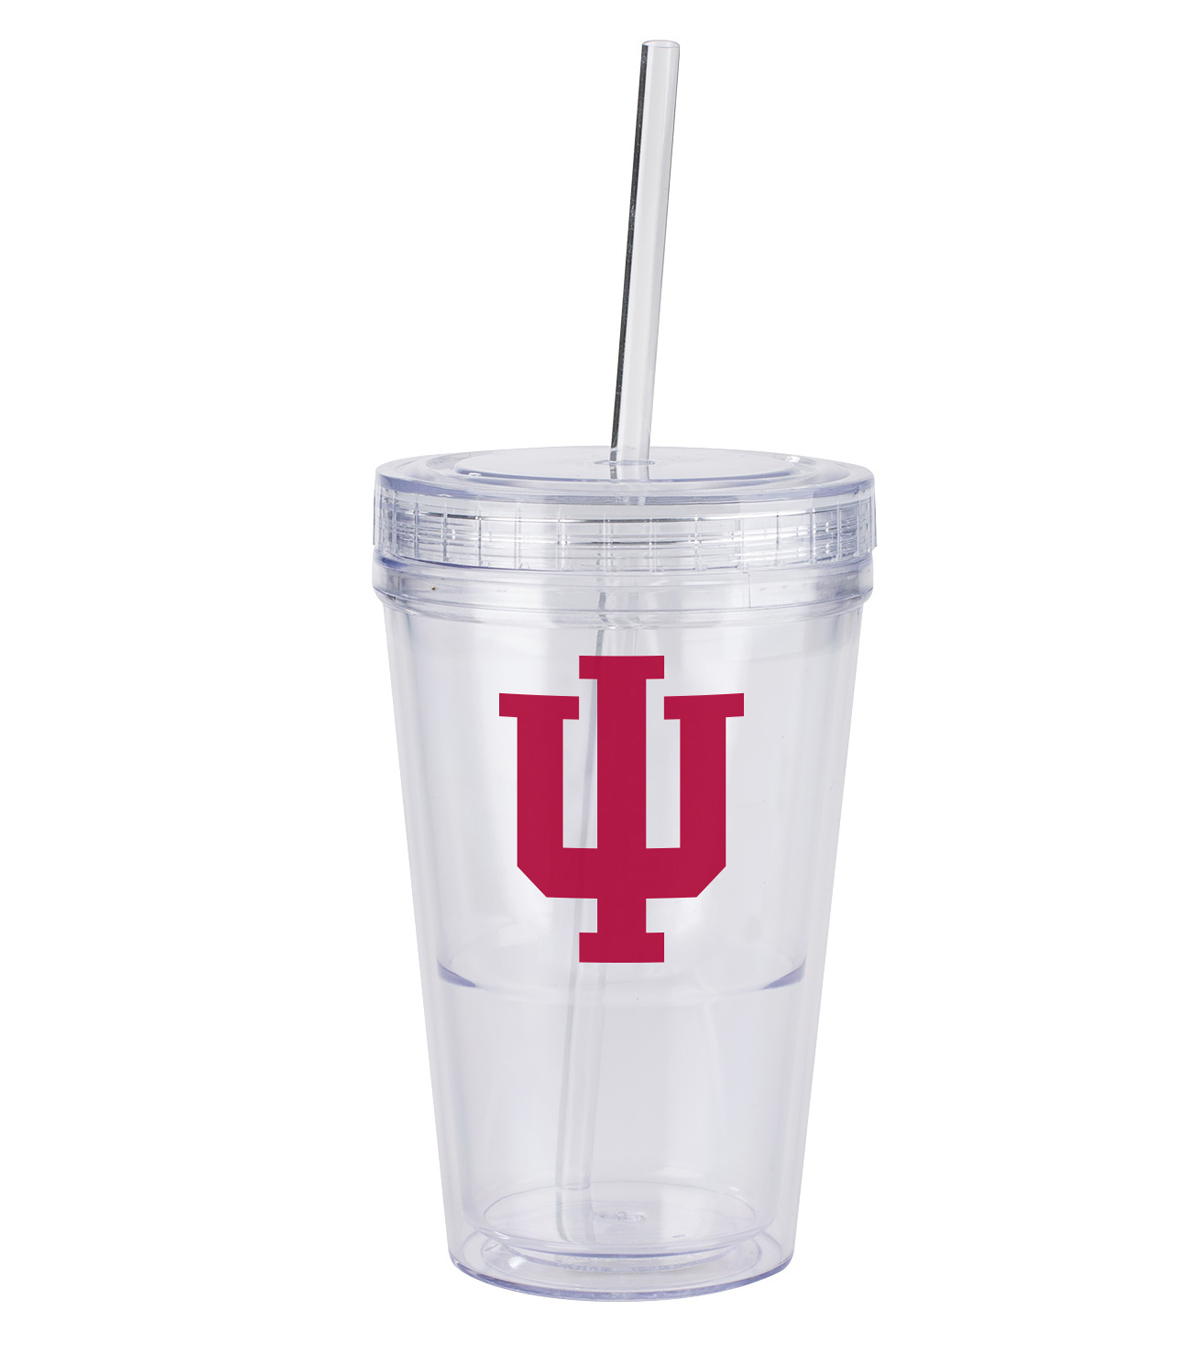 Indiana University Hoosiers 16oz Cup